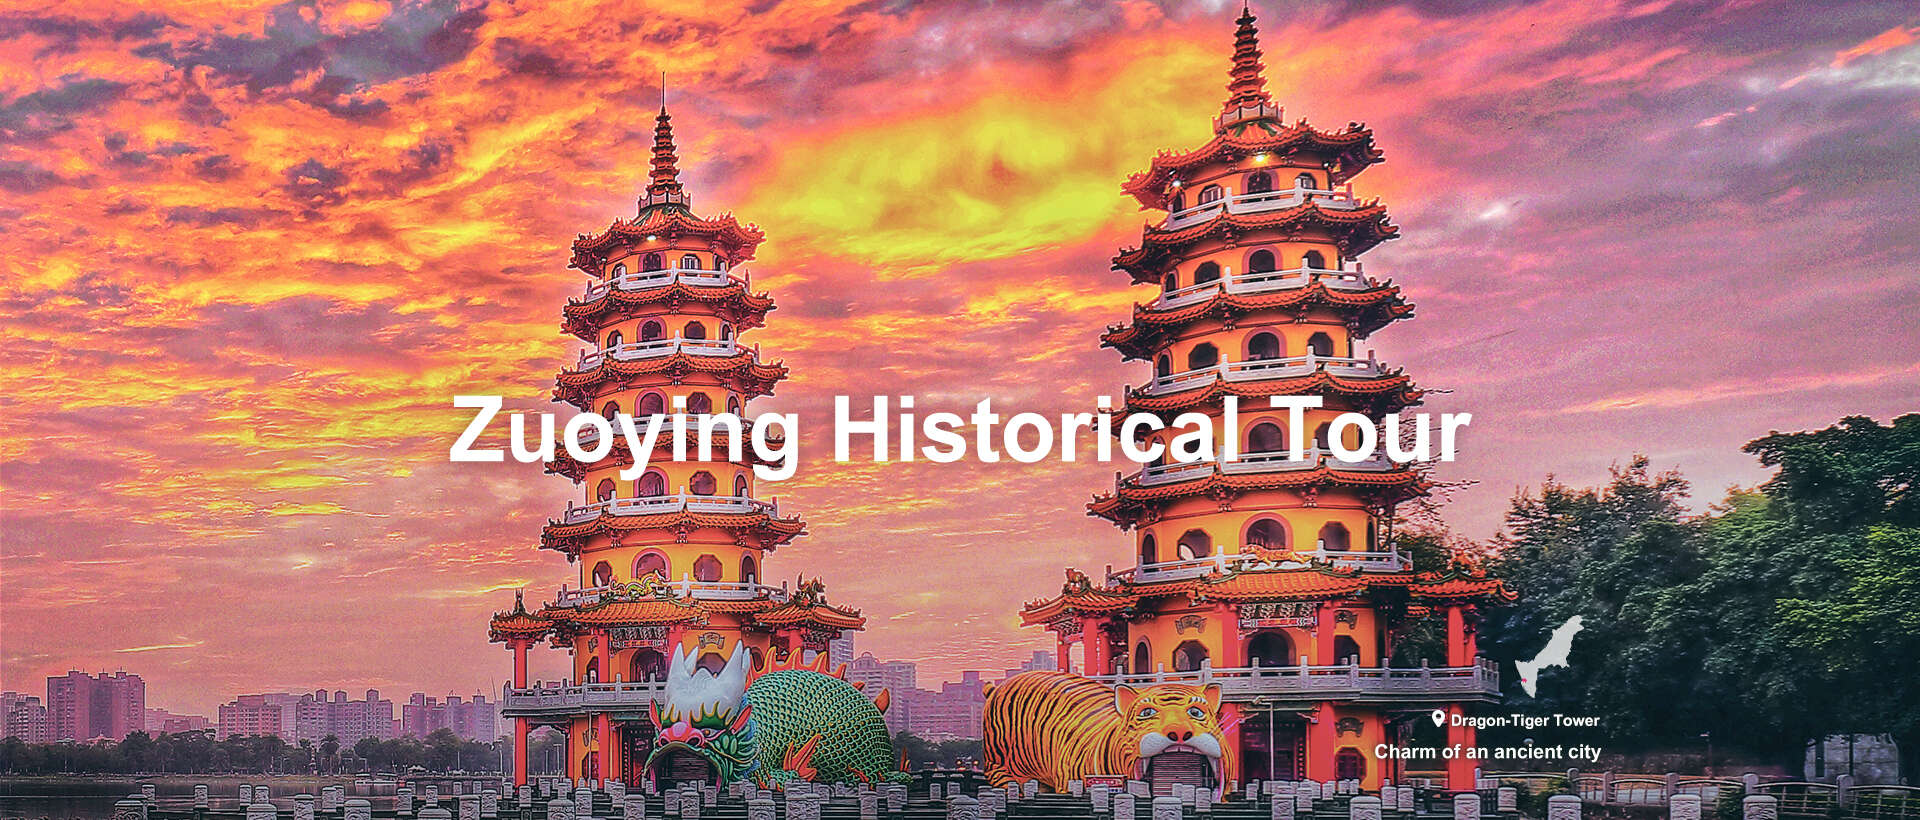 Zuoying Historical Tour